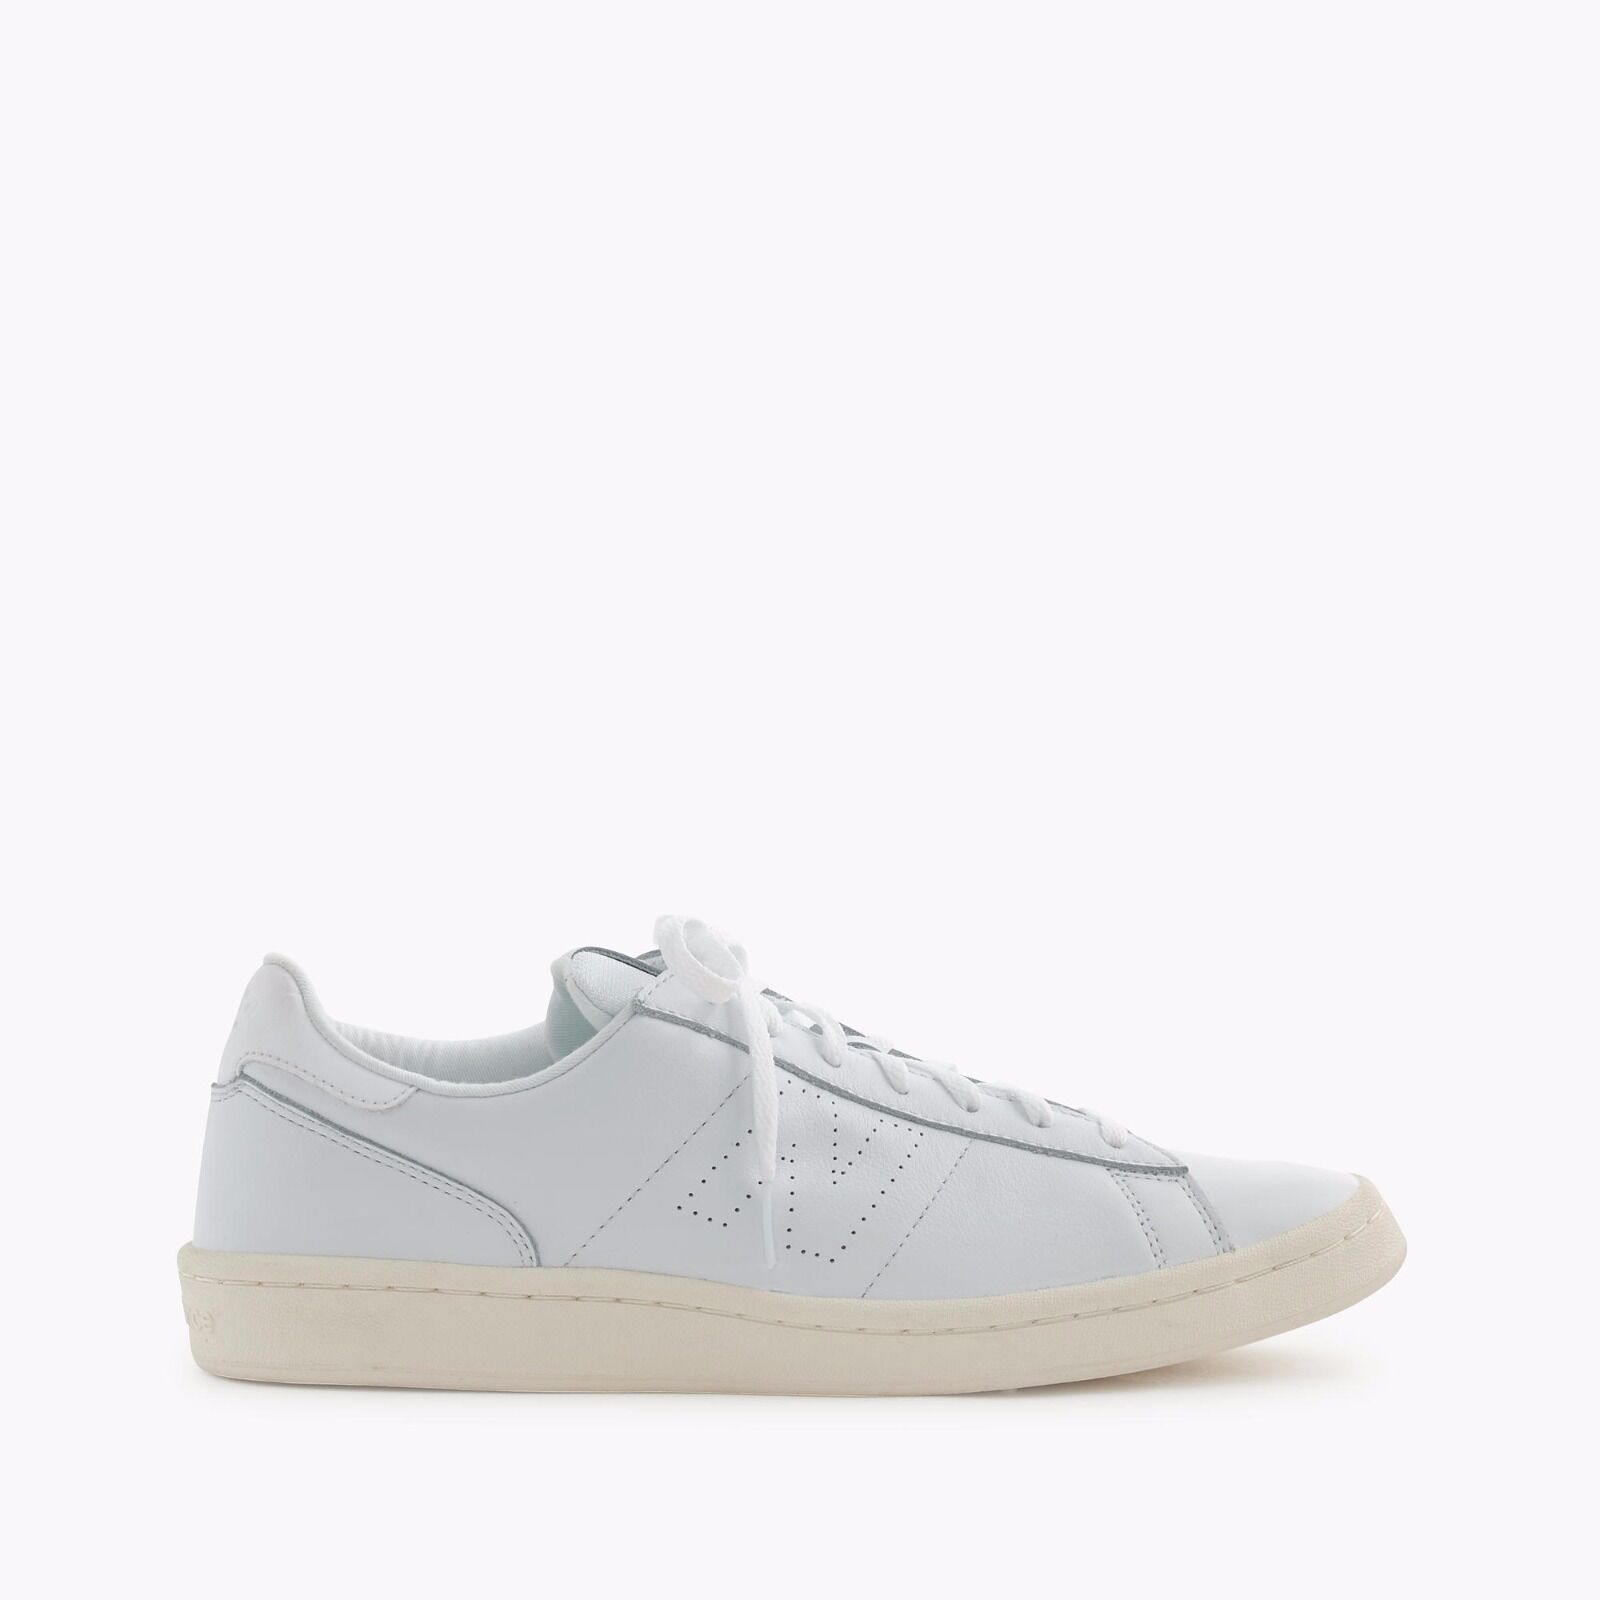 New Balance / Ledersneaker / weiß  / pure white / leather sneaker / 42,5 / 9